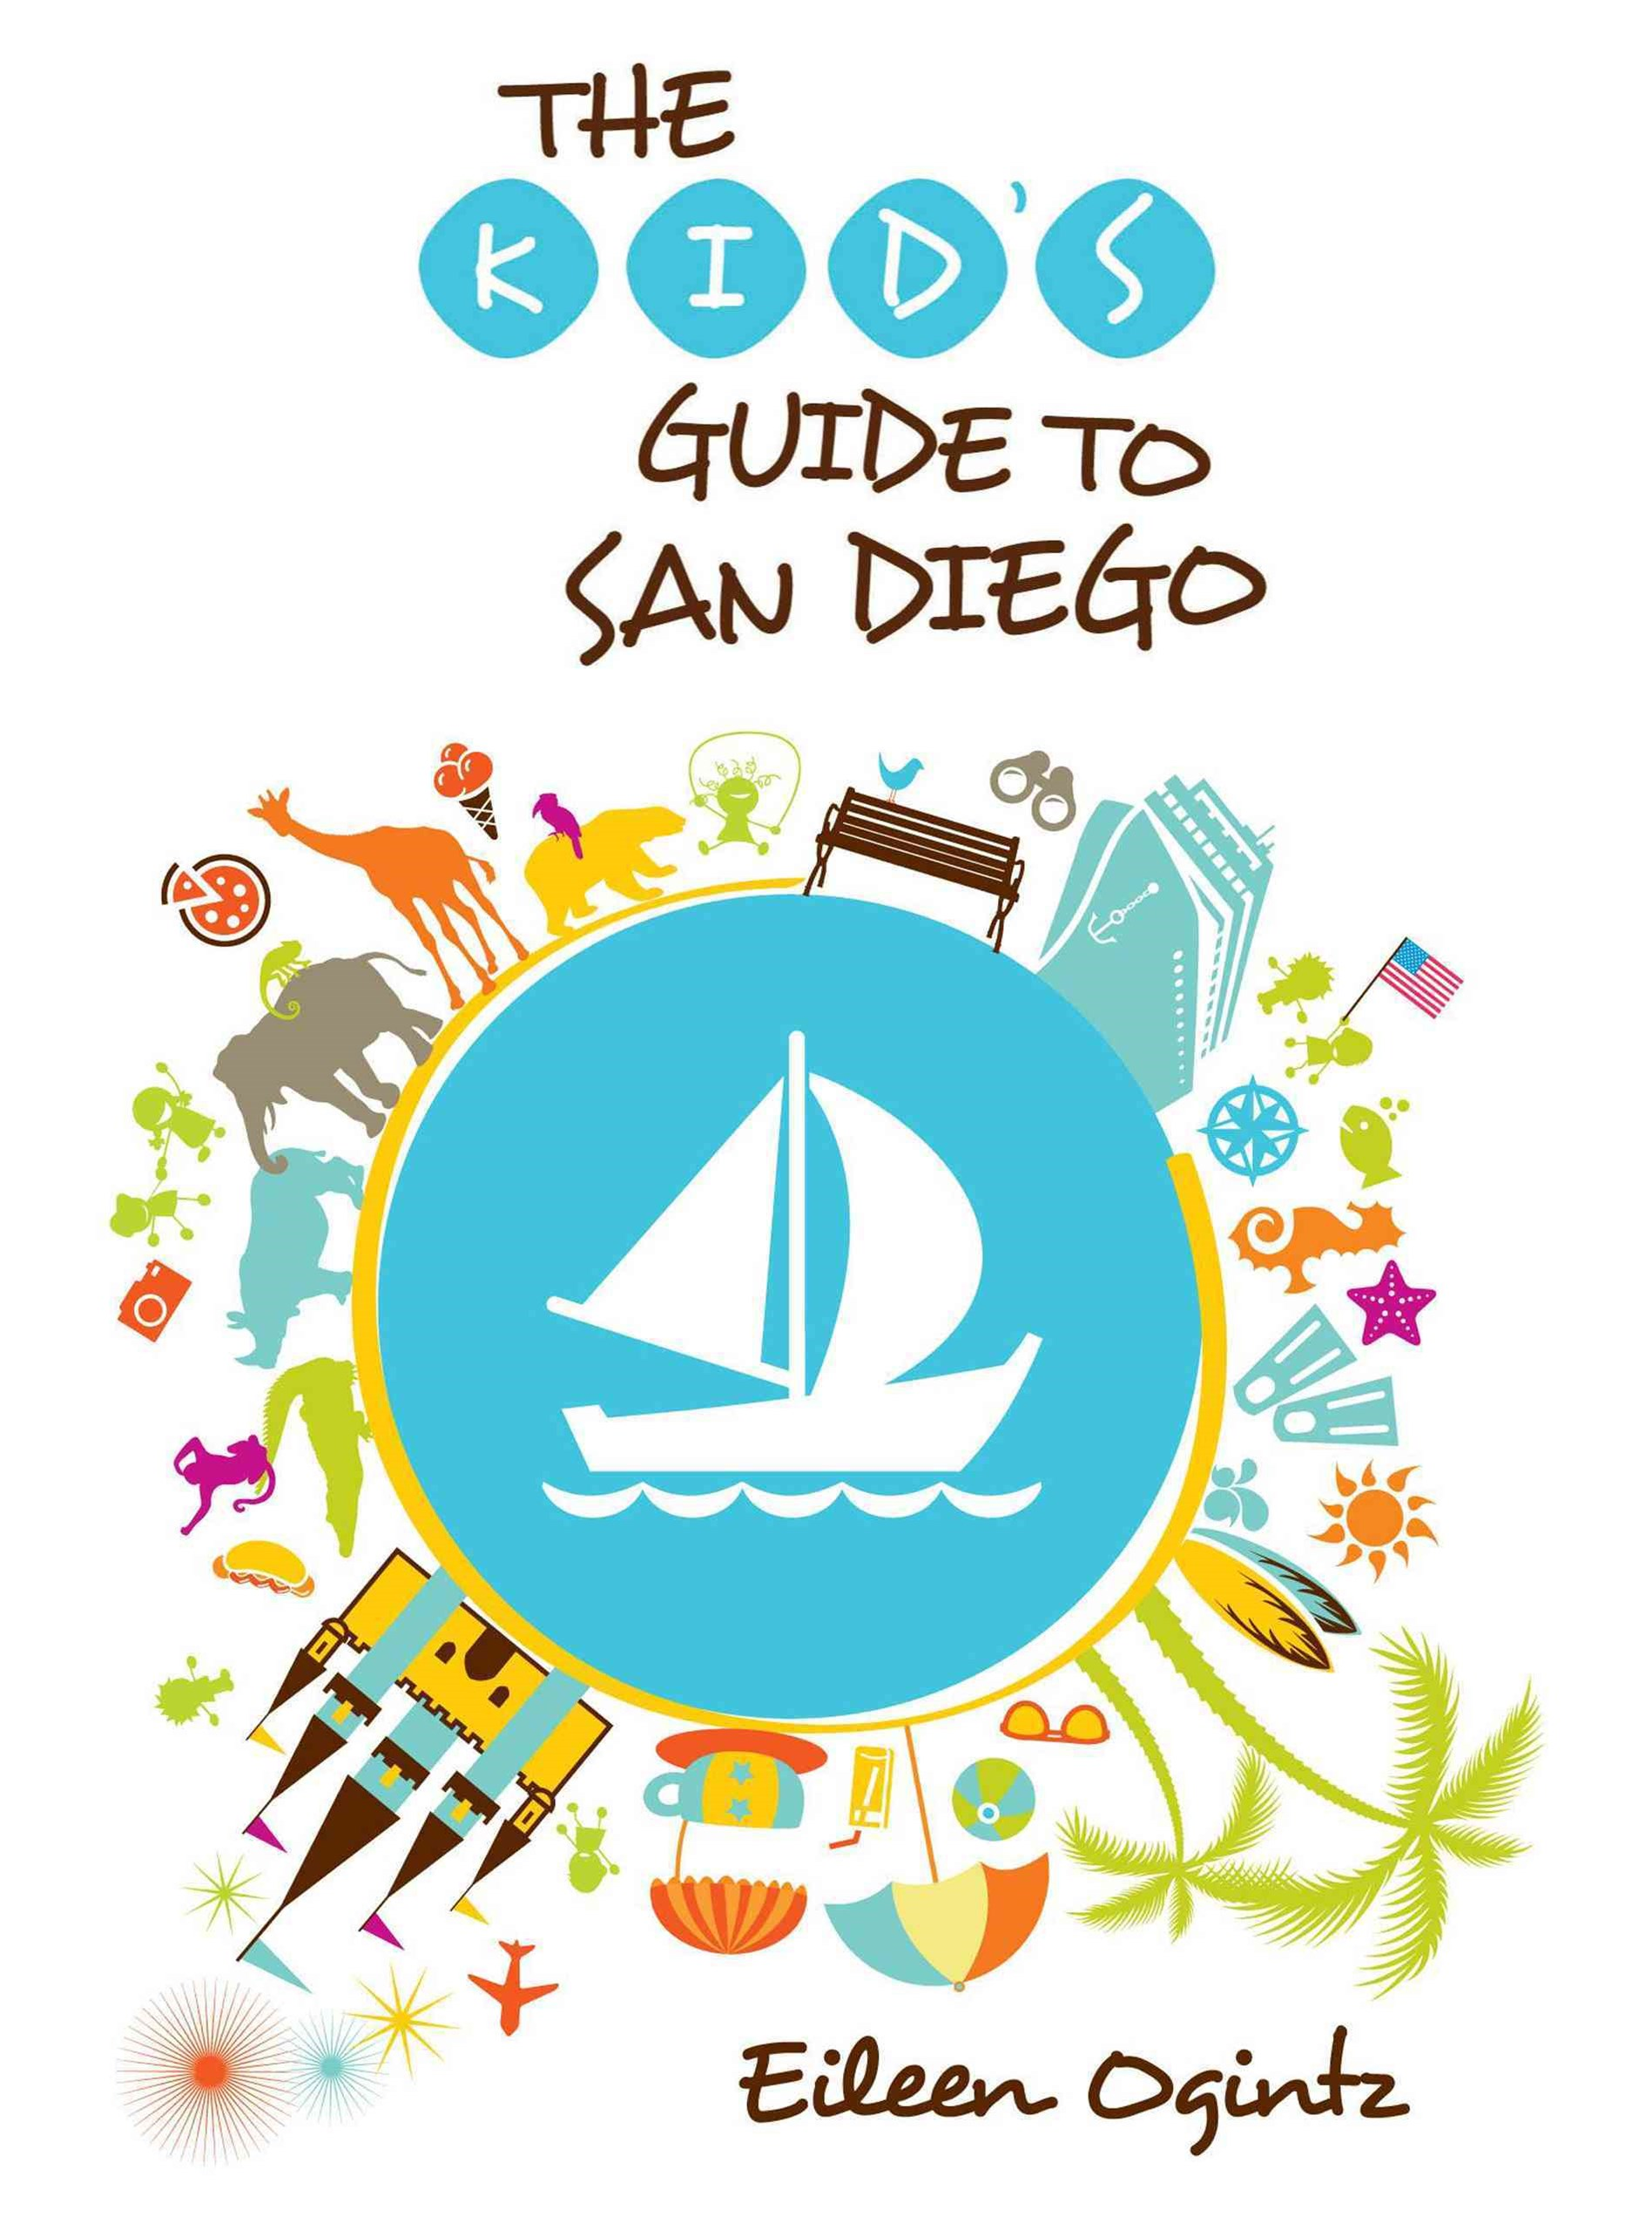 The Kid's Guide to San Diego